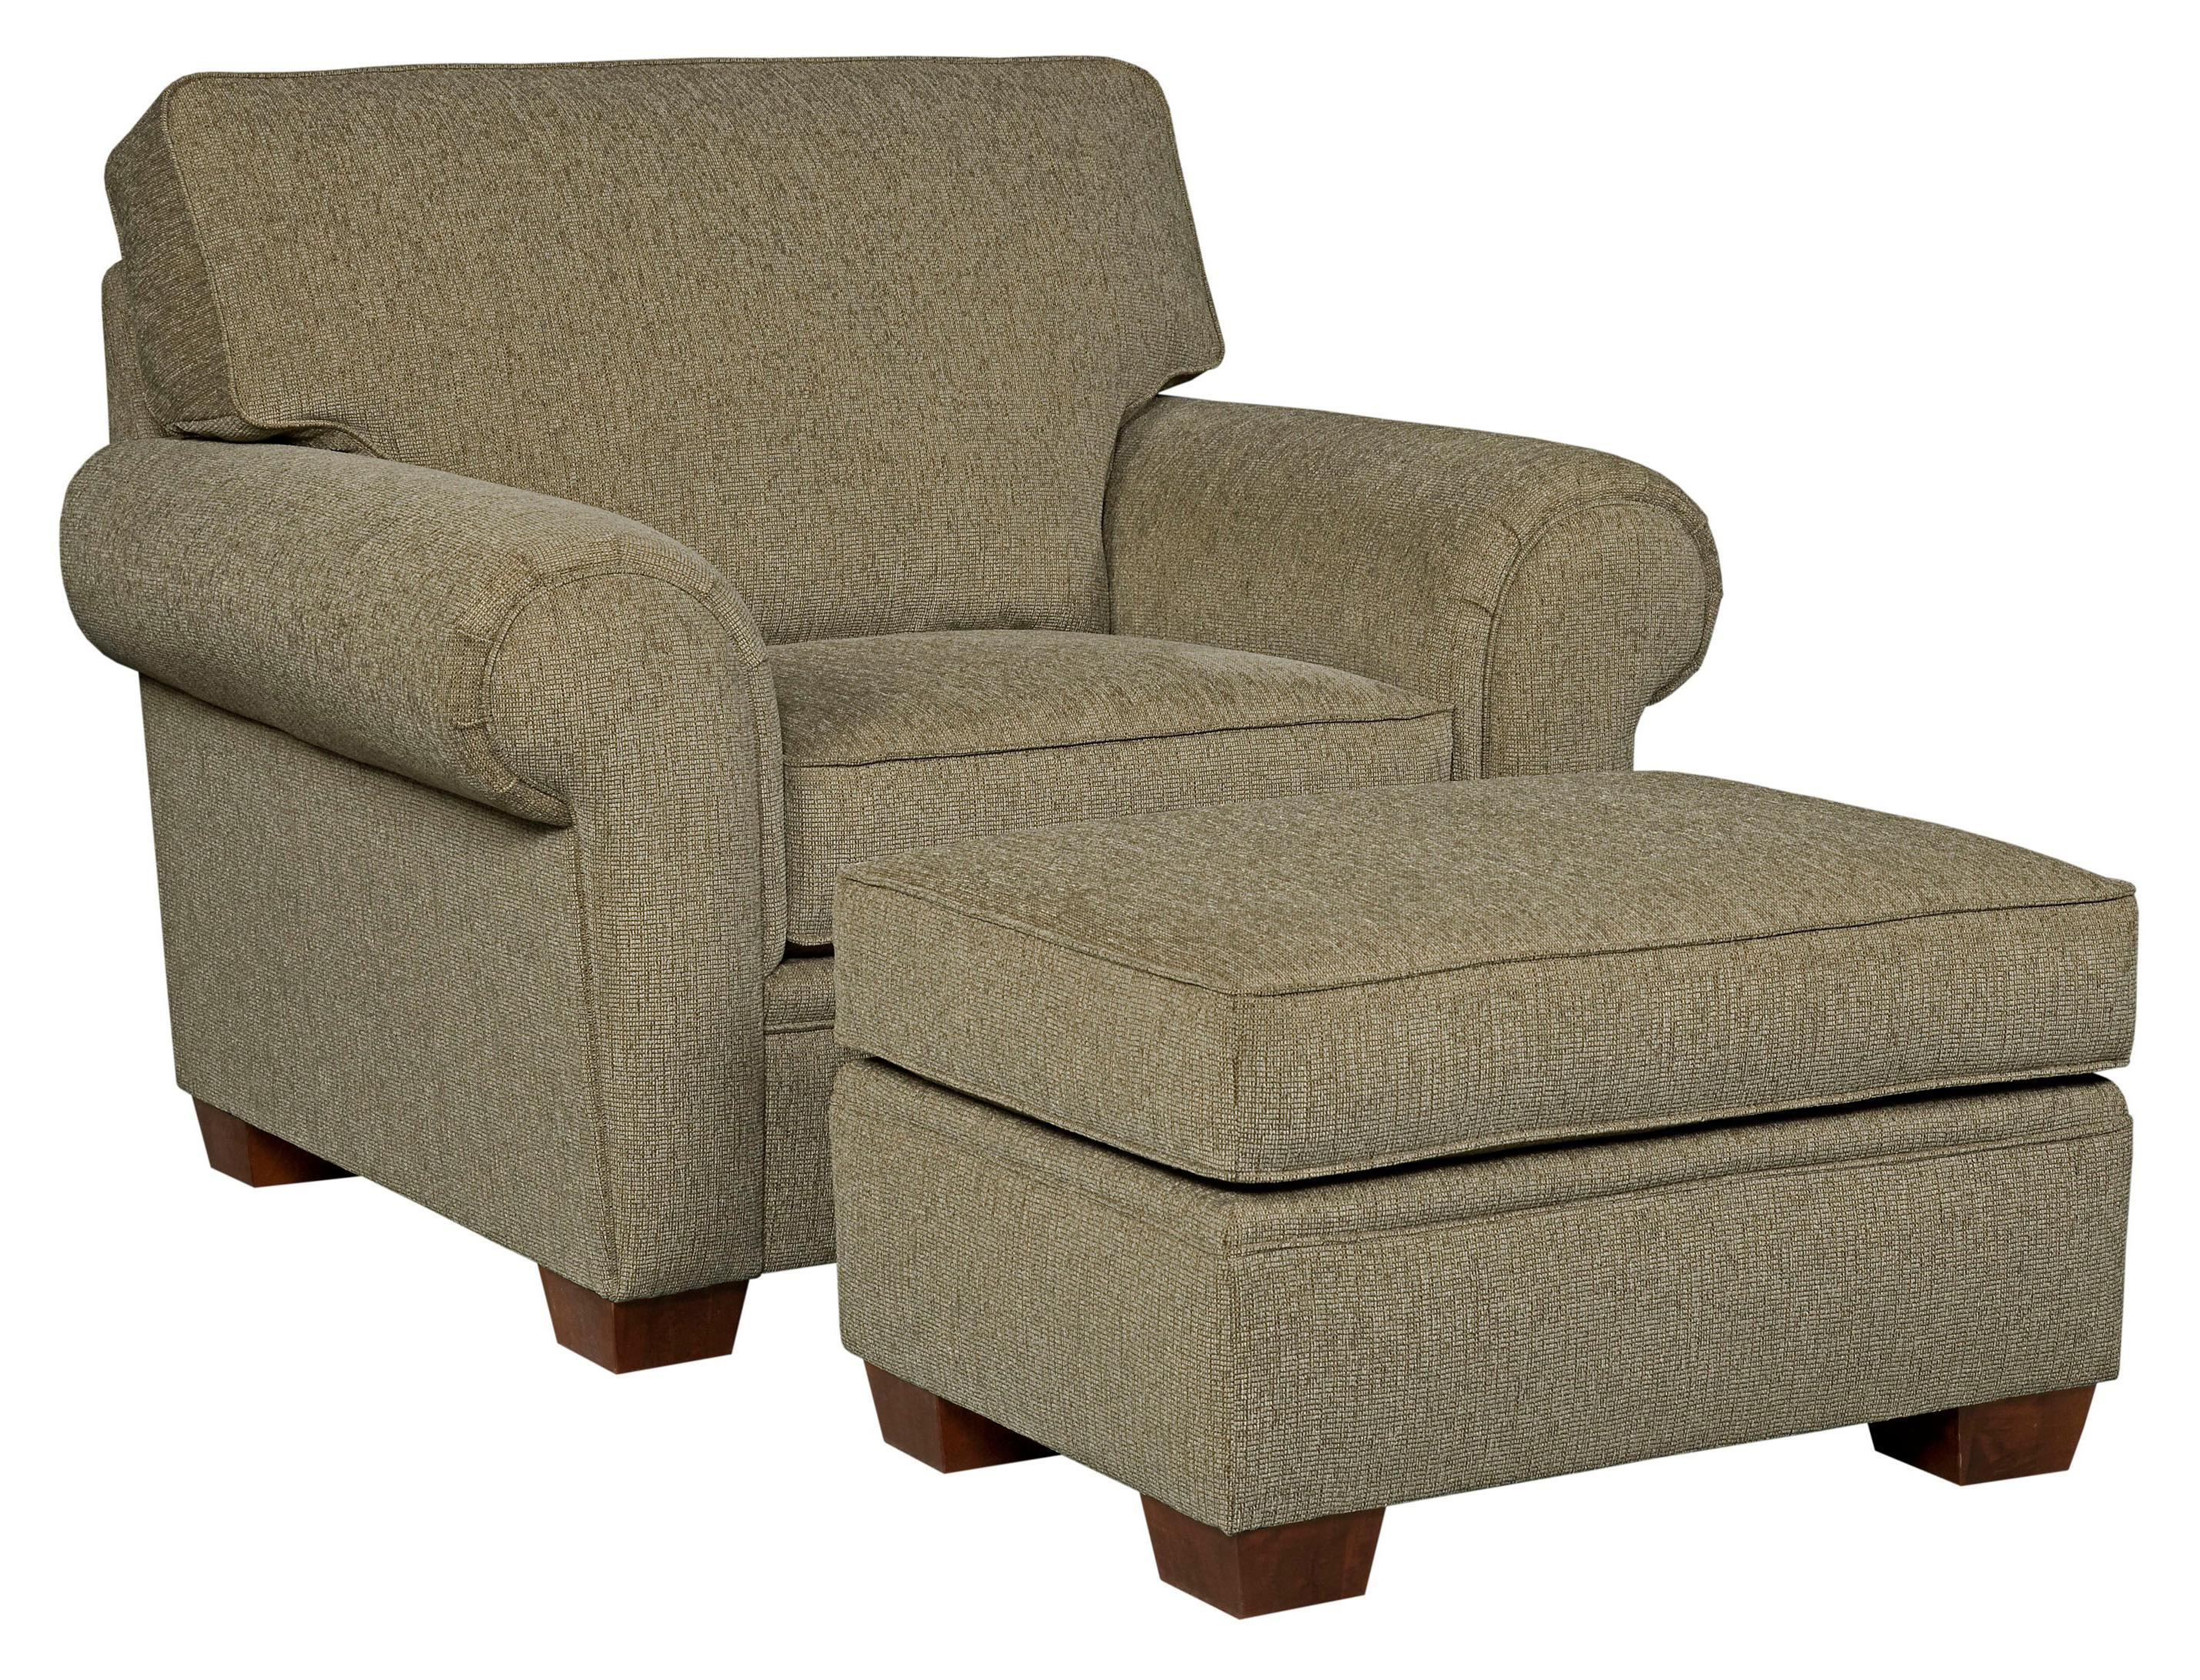 Broyhill Furniture Miller Casual Chair and Ottoman Set - Item Number: 5300-0+5